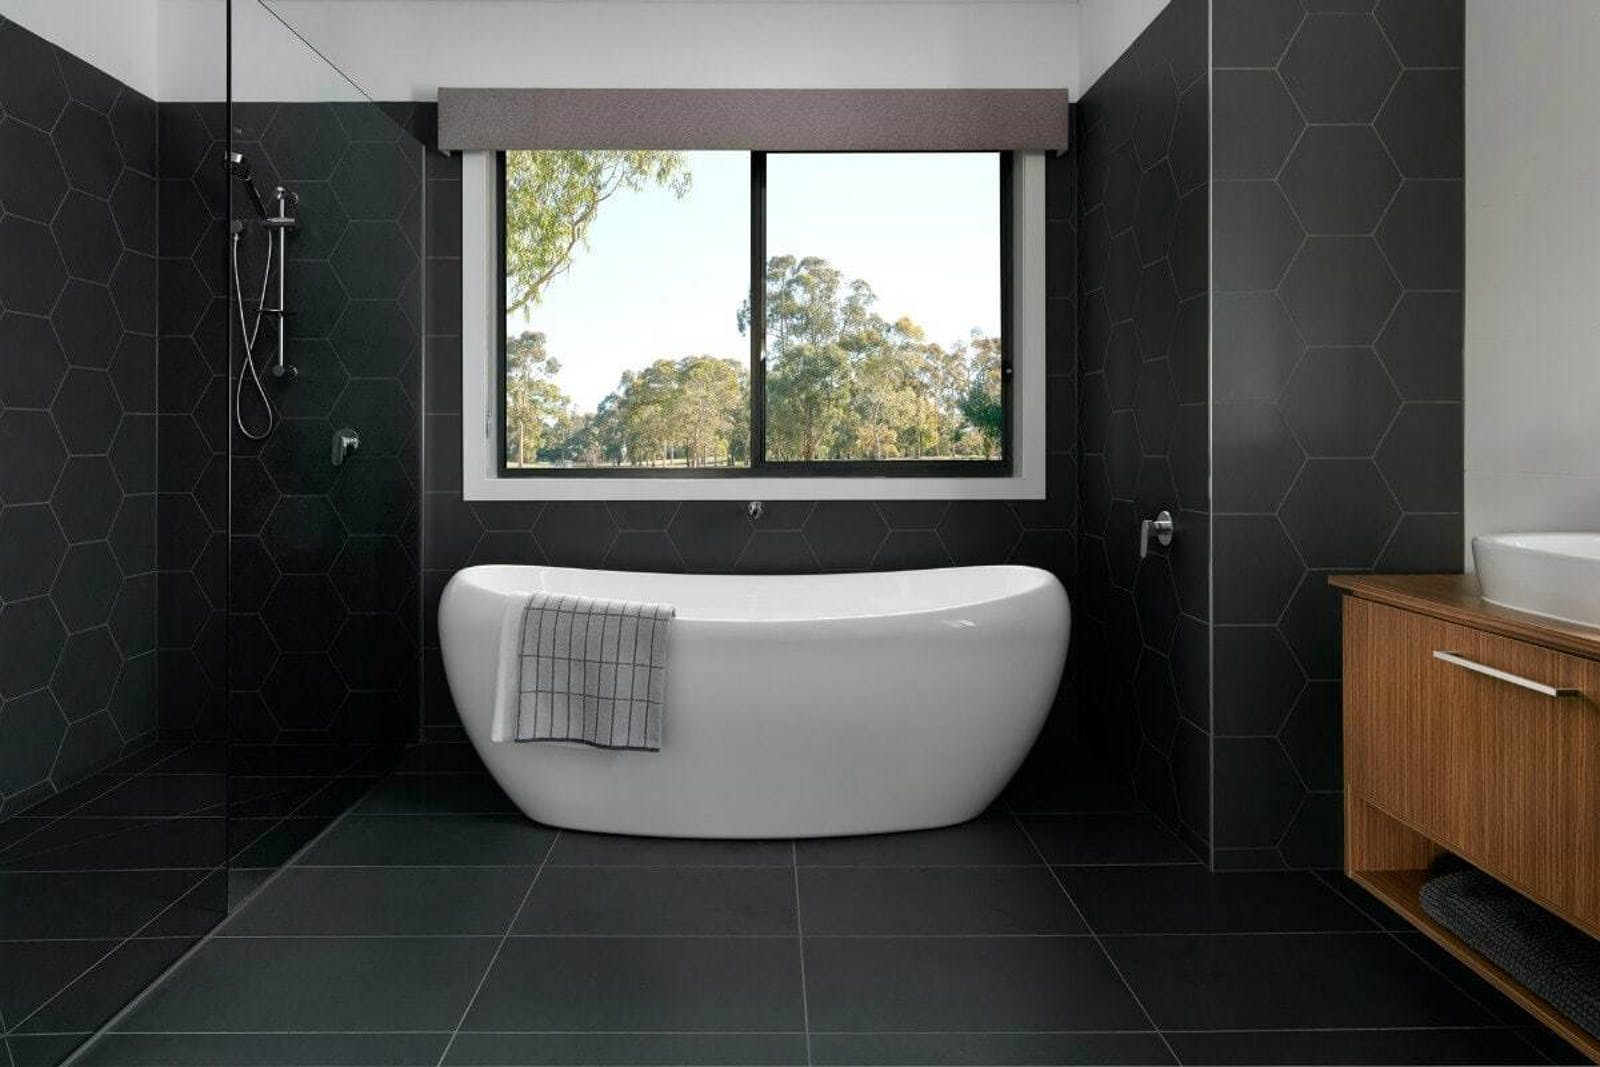 Black bathroom with big black tiles and a bathtub, placed in front of a big window